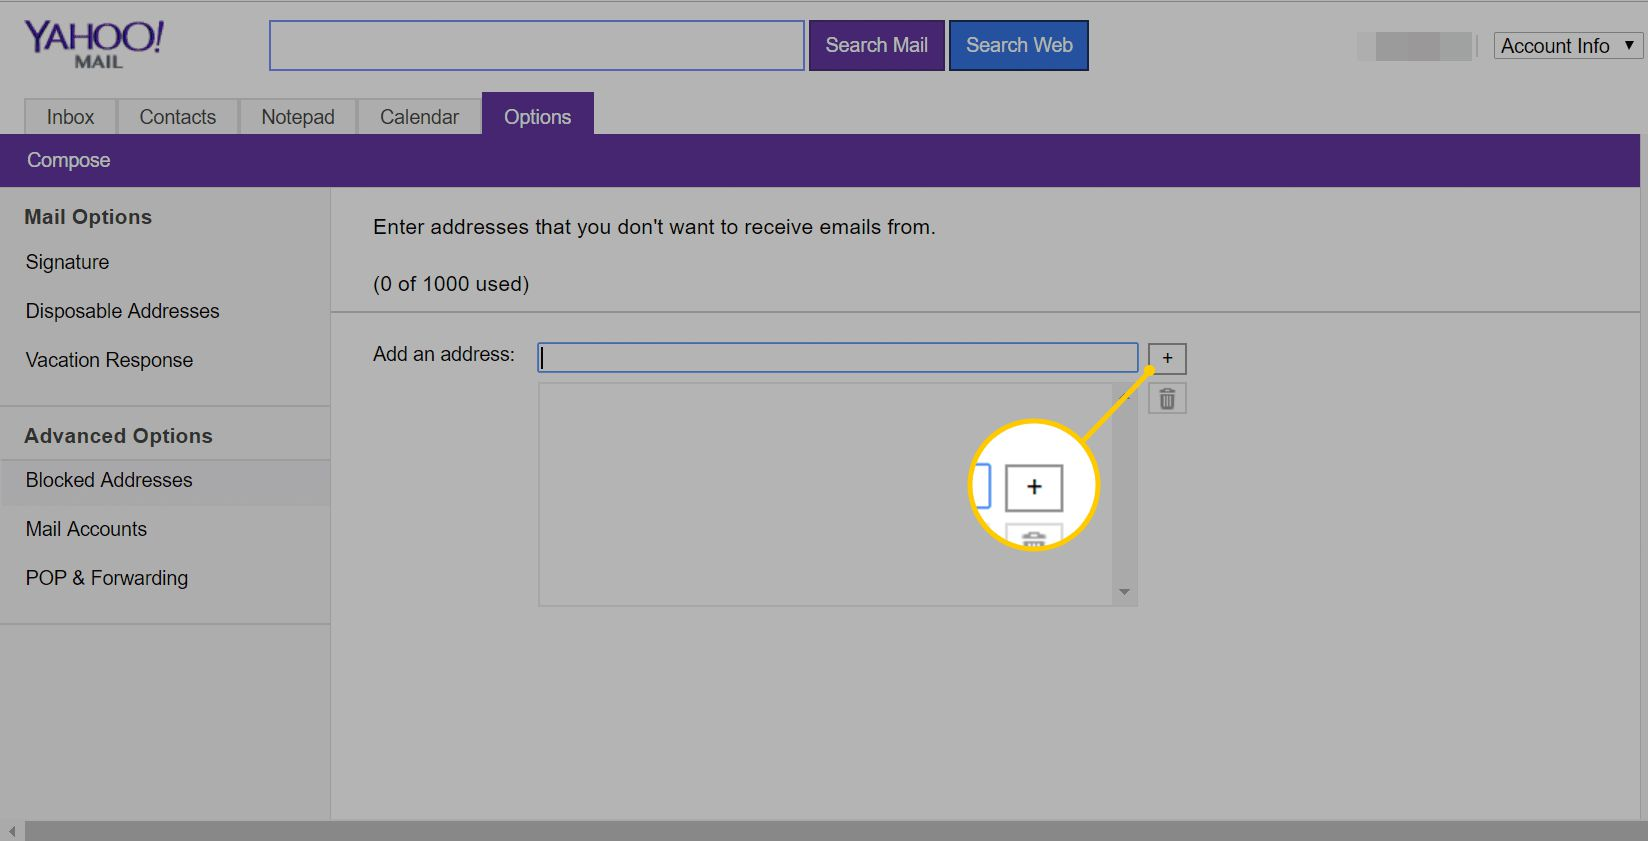 How to Block Unwanted Emails From Senders in Yahoo Mail